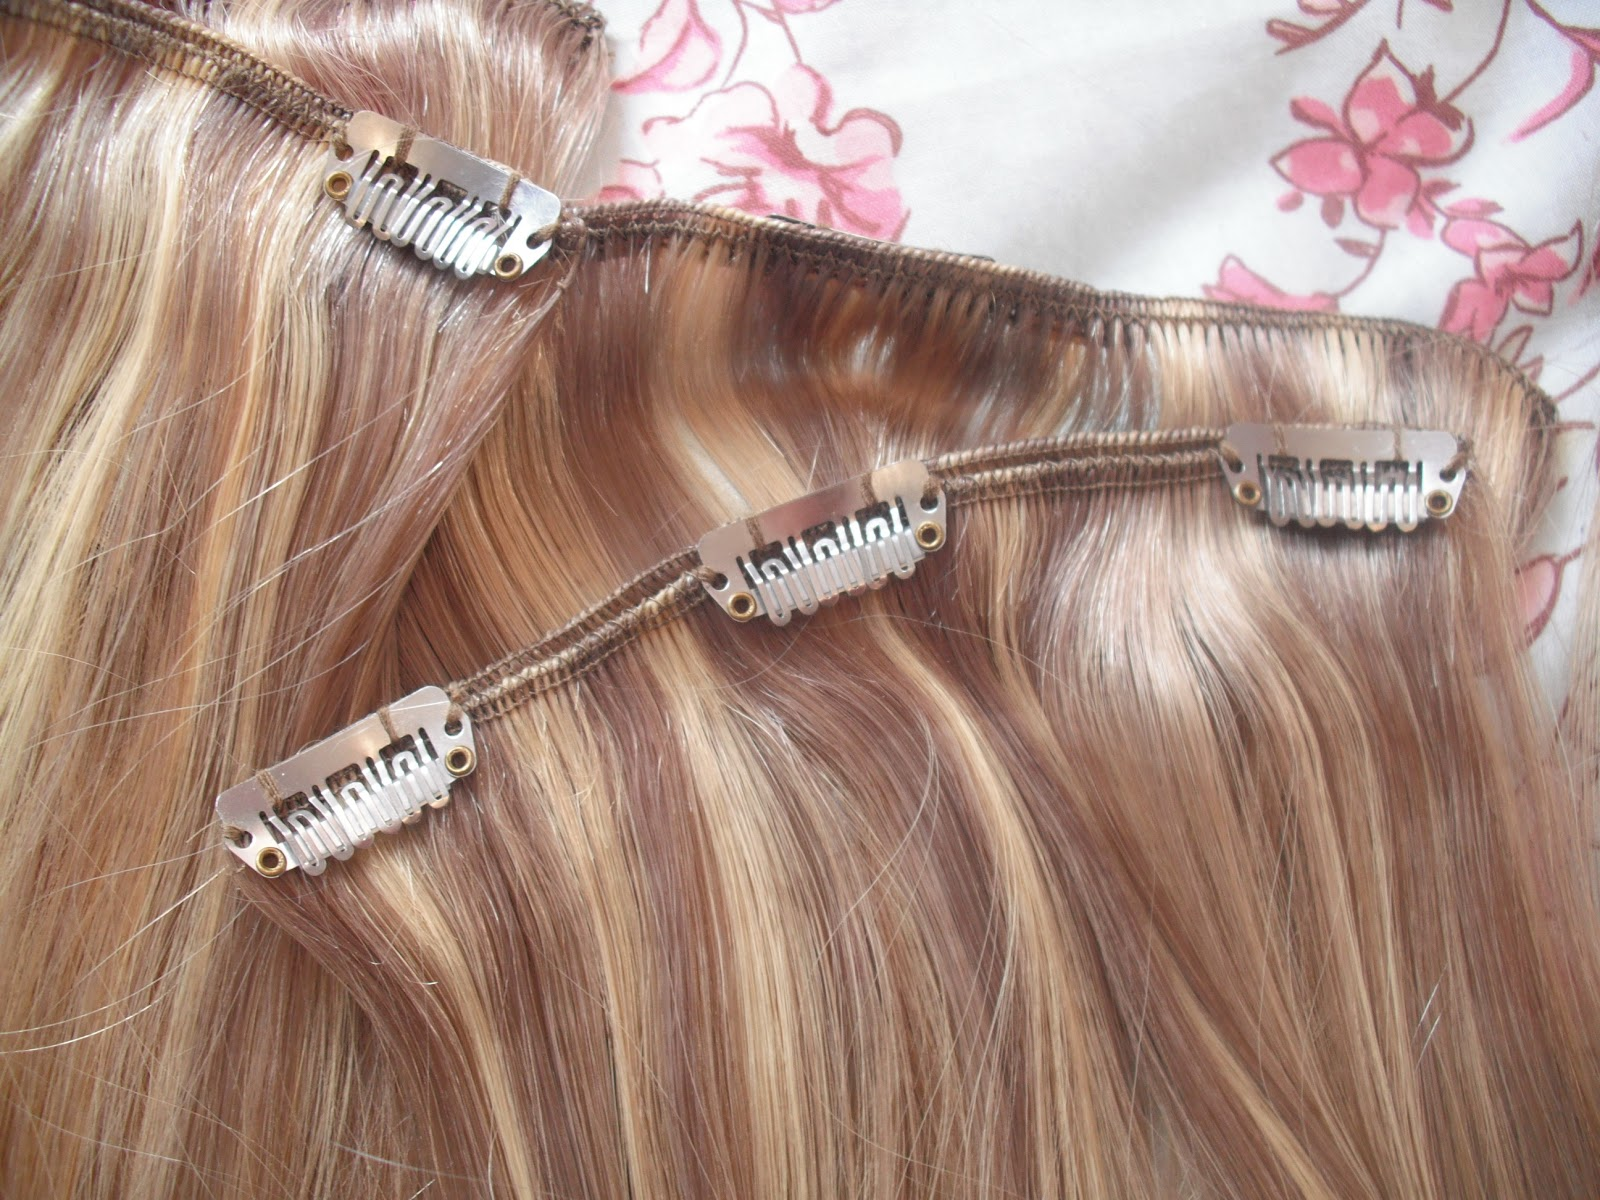 Hair Extension With And Without Clip Vipin Hair Extension